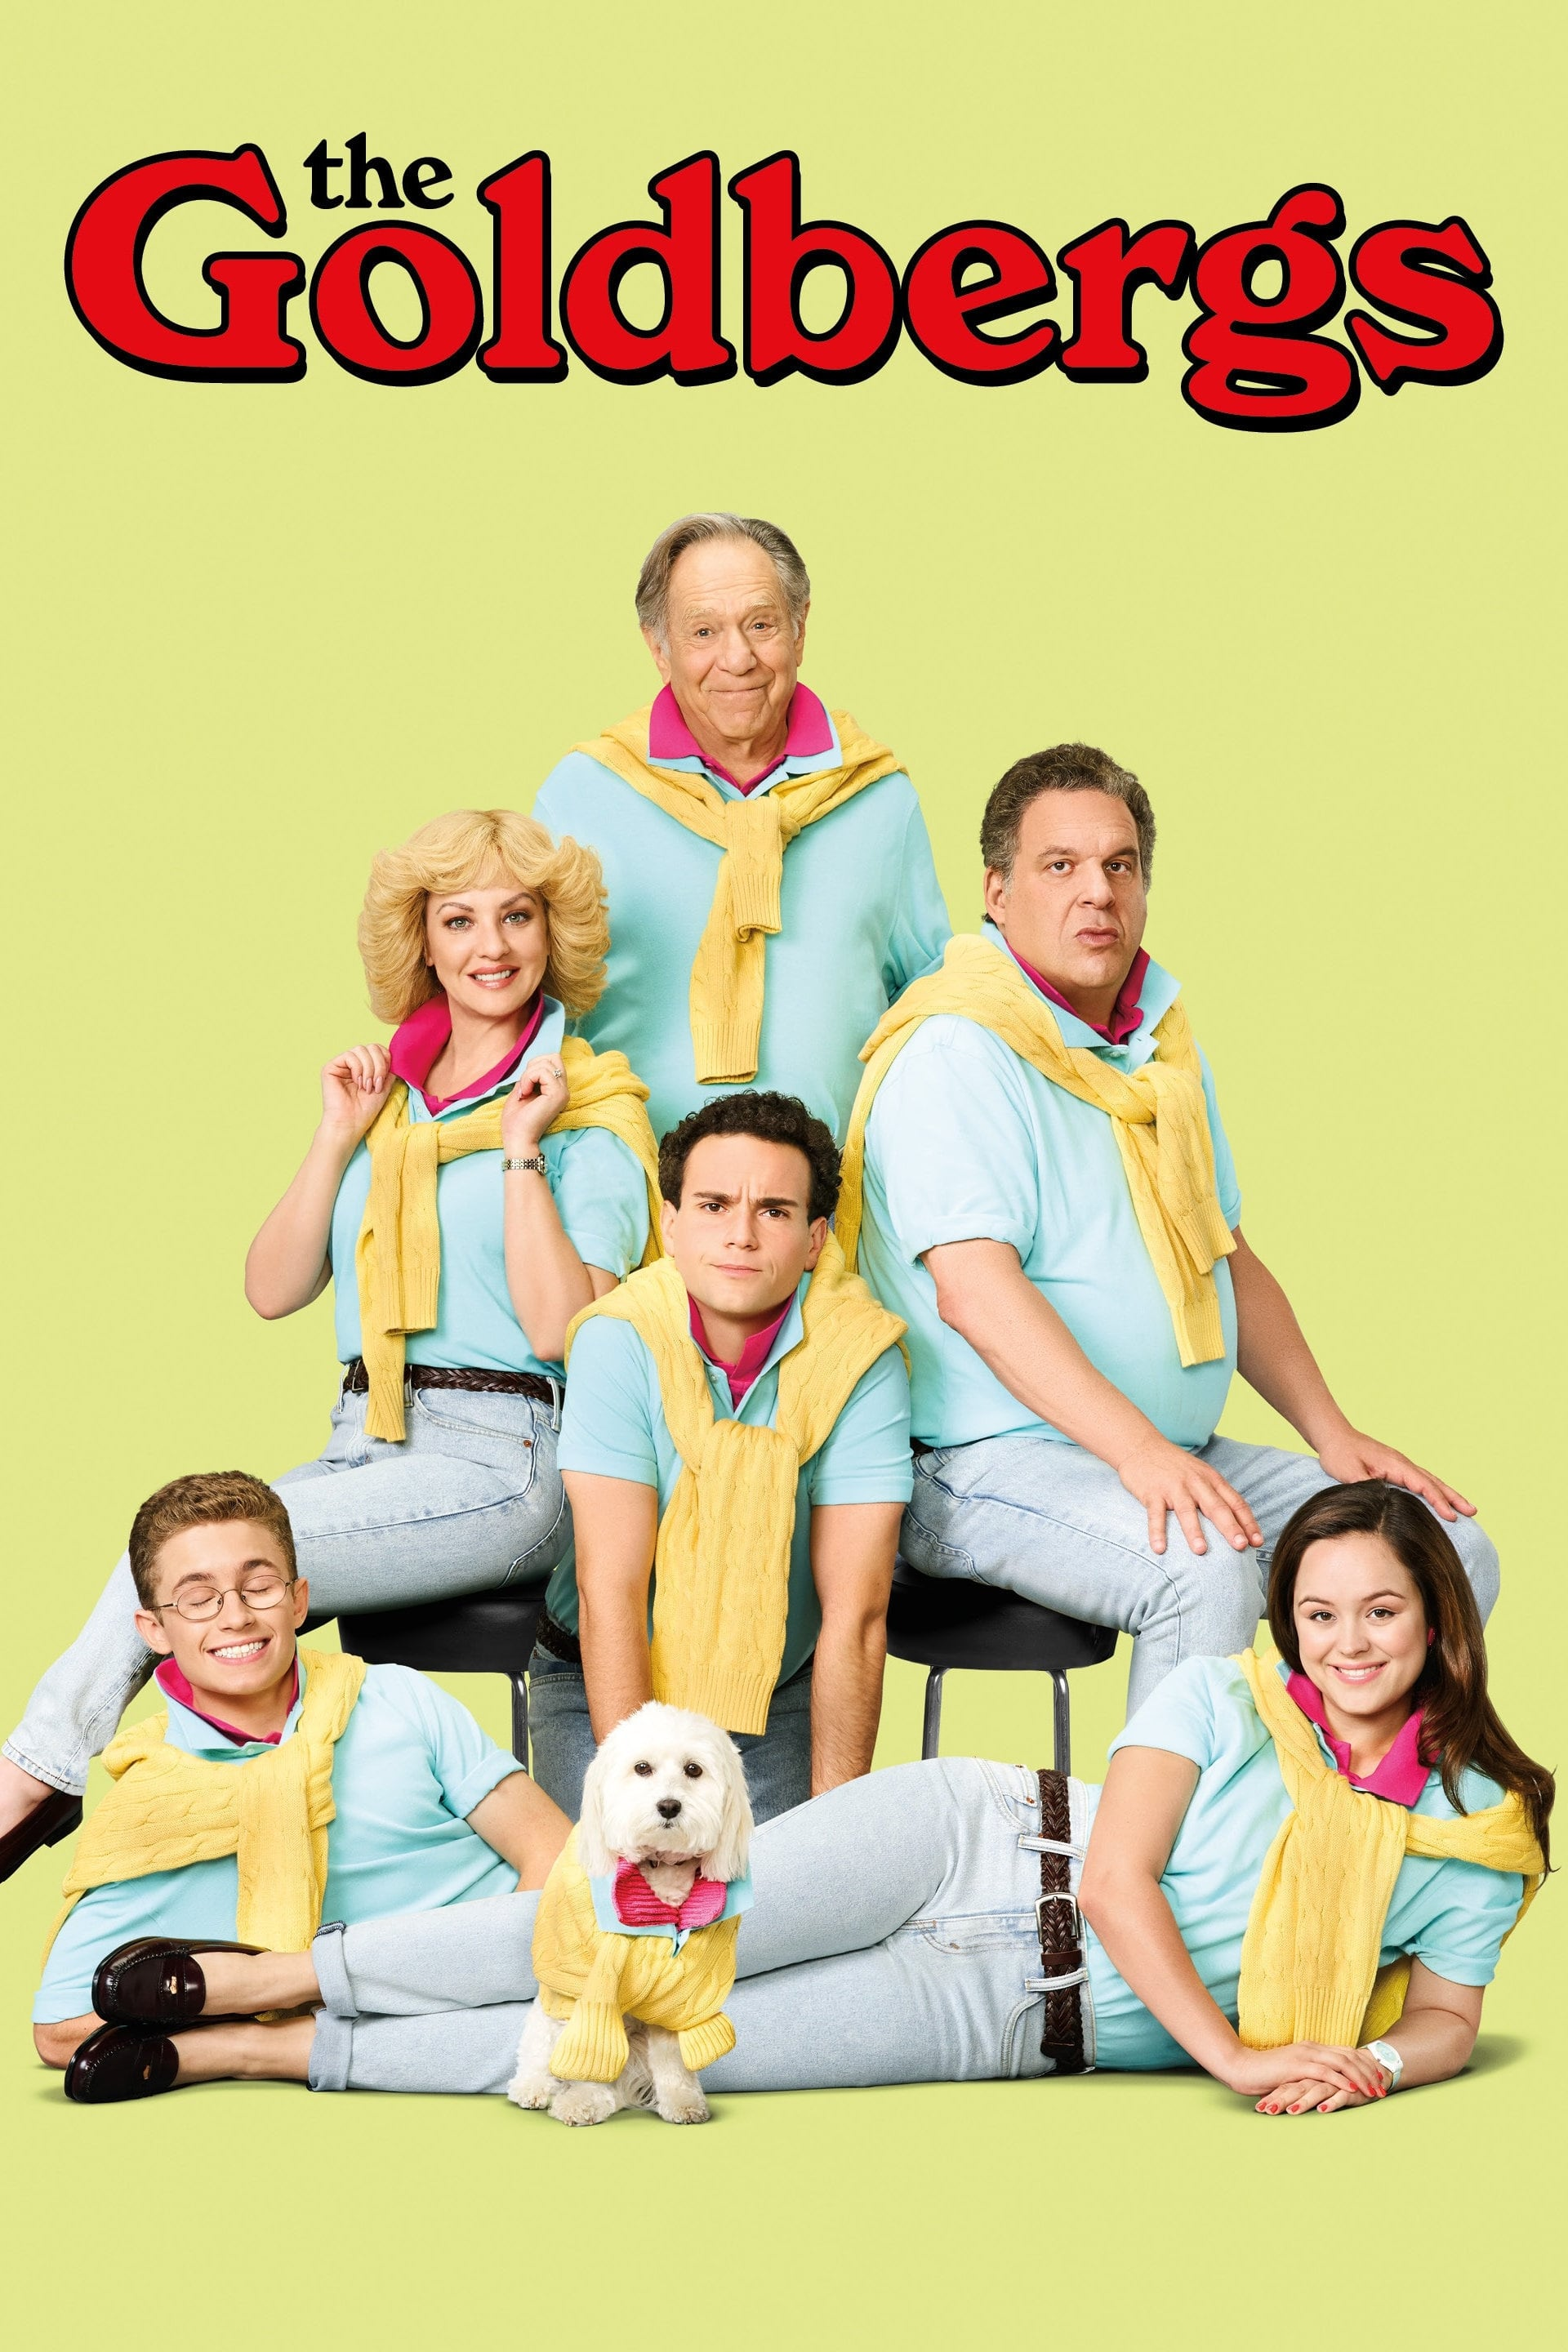 The Goldbergs Poster